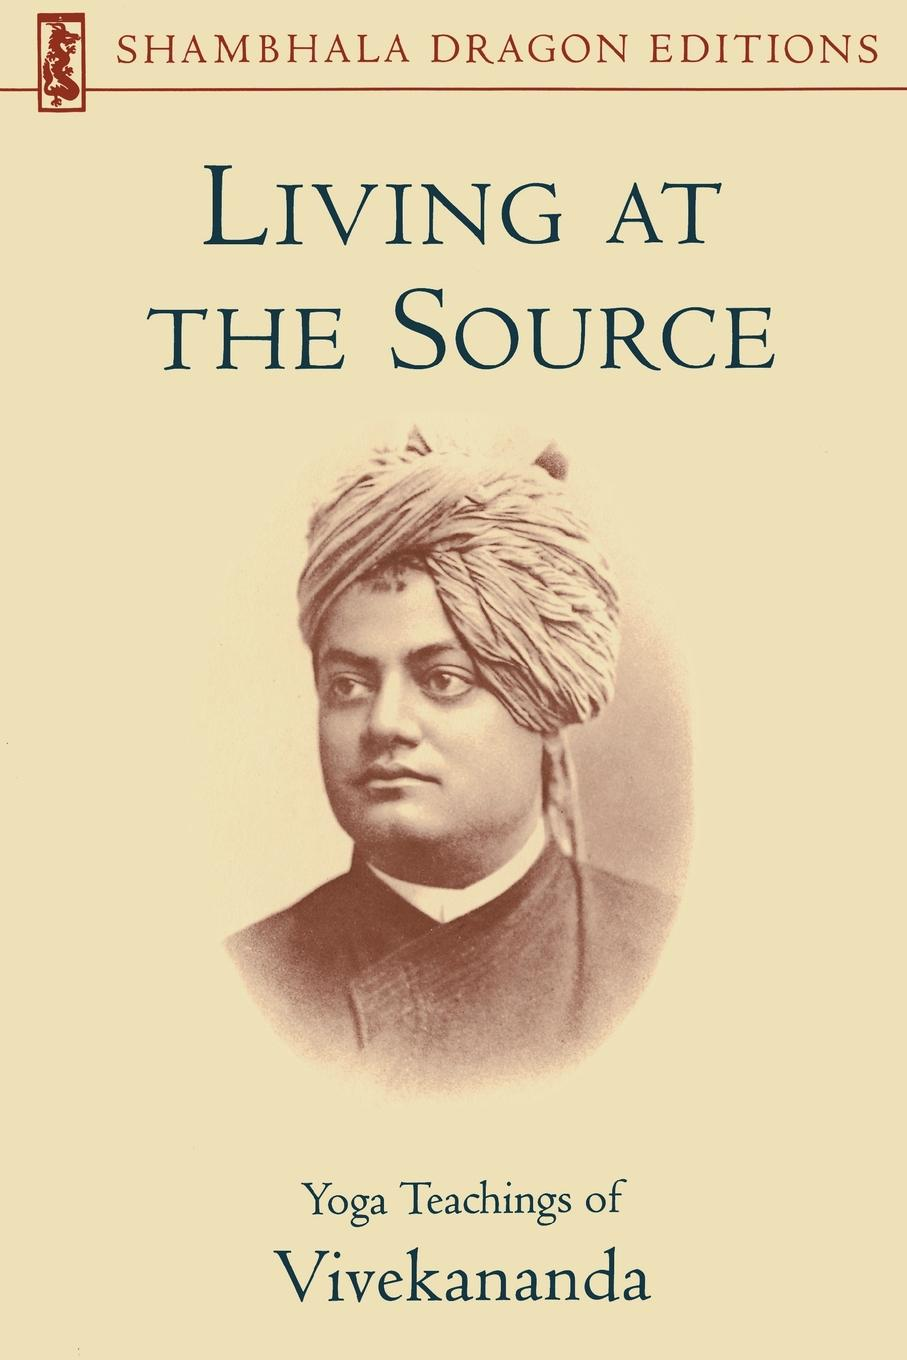 Living at the Source. Yoga Teachings of Vivekananda in the midst of life